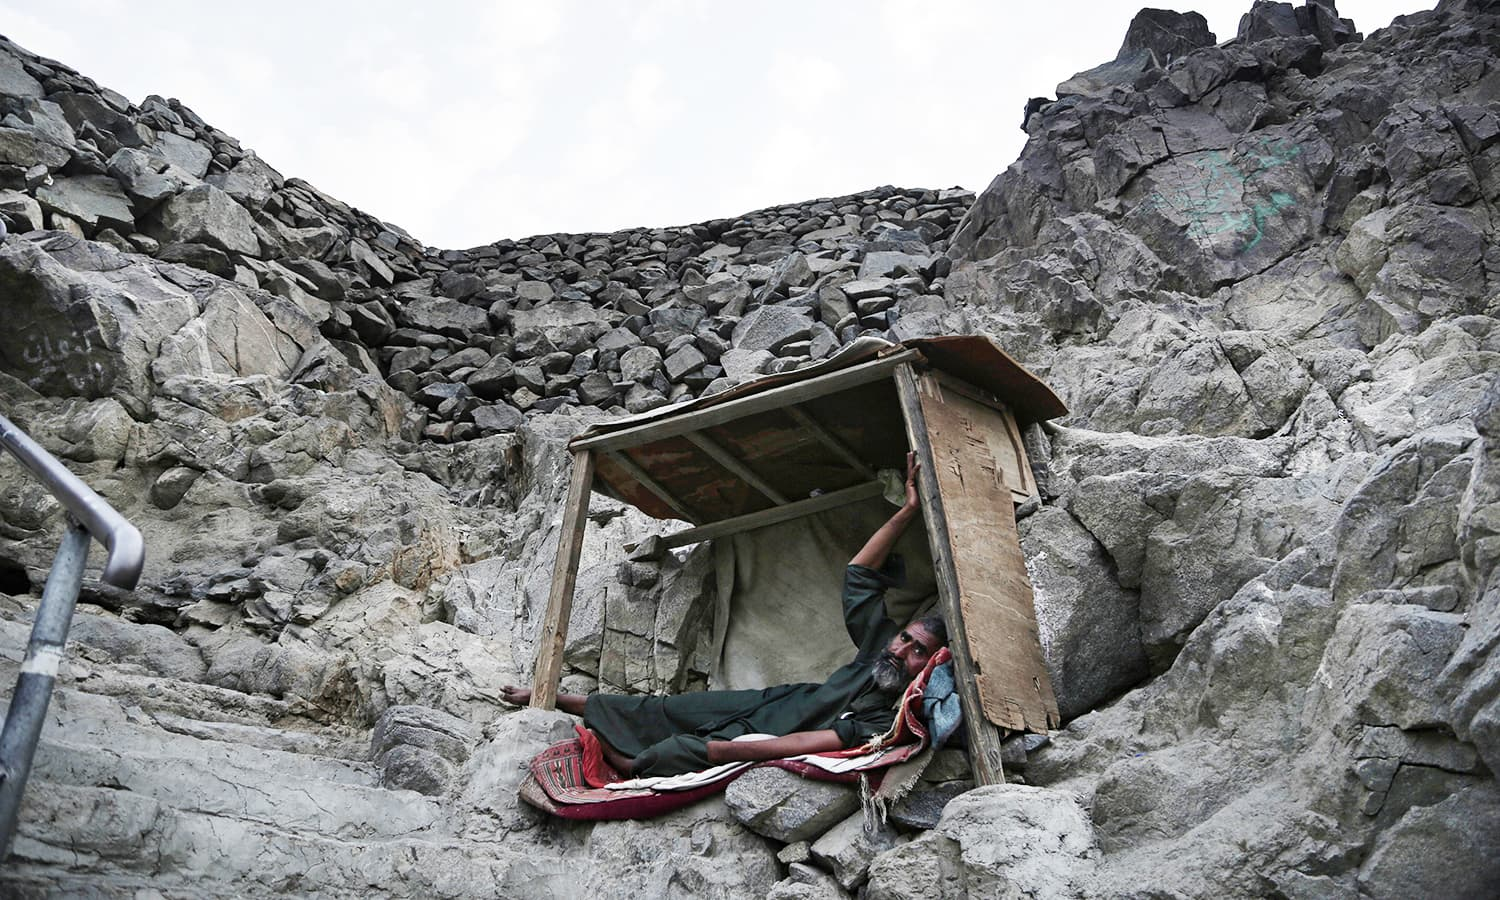 A Pakistani beggar who sleeps on Noor Mountain poses for a portrait.— AP